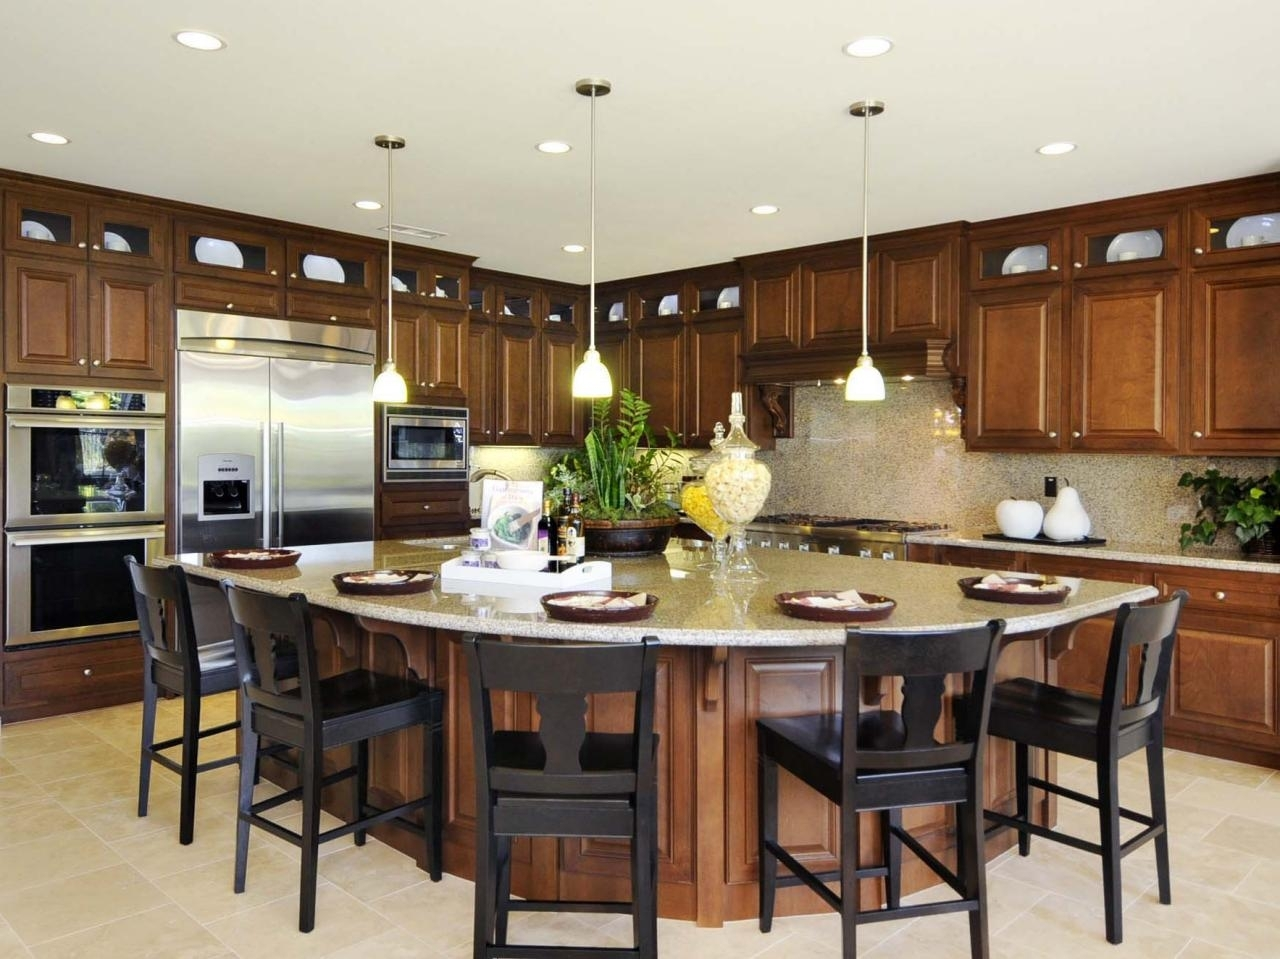 10 Famous Kitchen Island Ideas With Seating %name